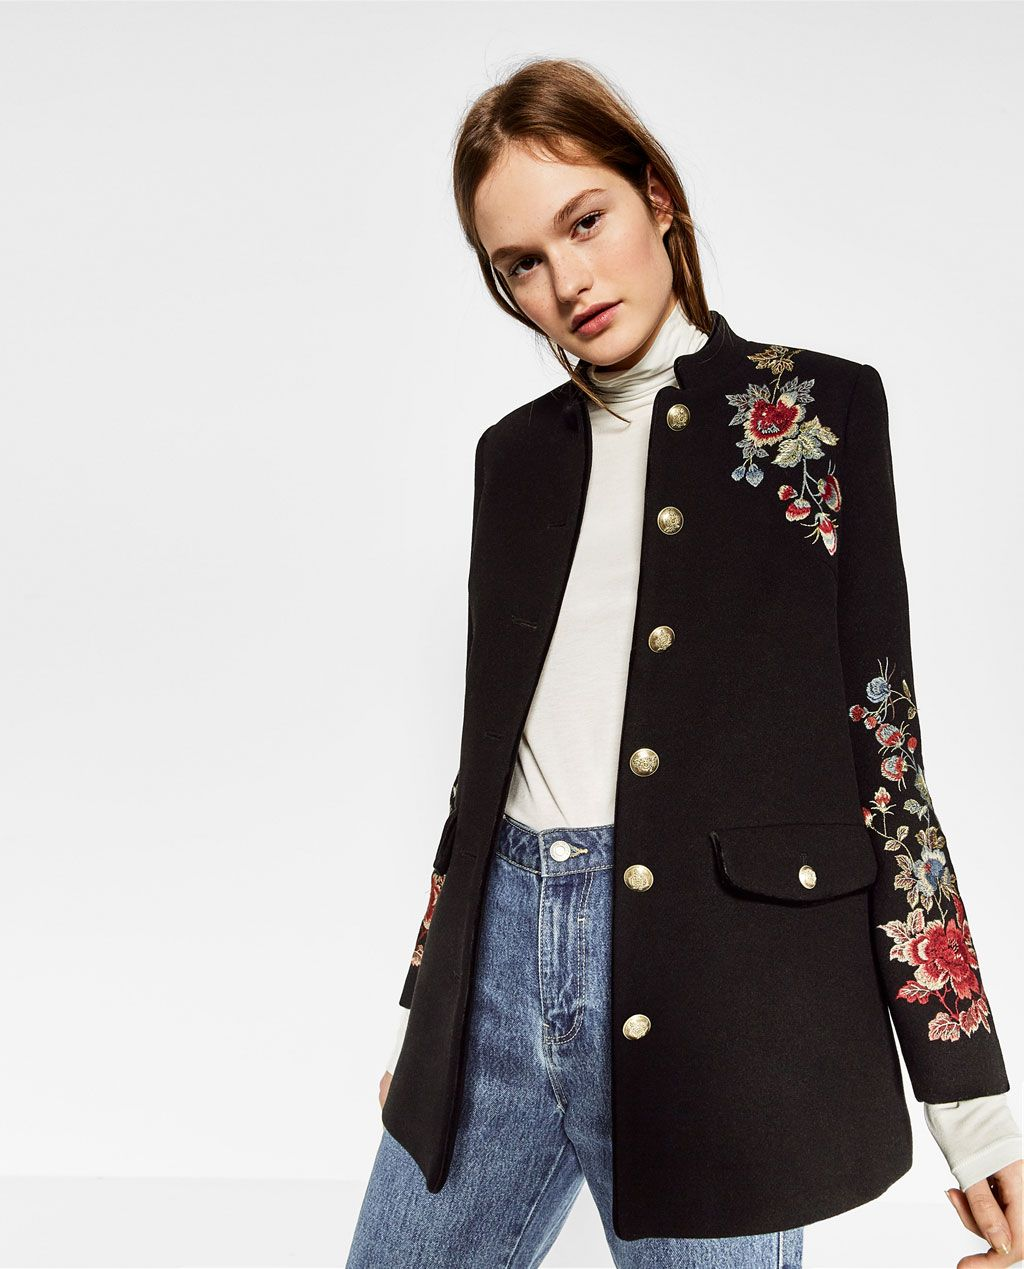 FLORAL MILITARY-STYLE COAT-View all-OUTERWEAR-WOMAN  ade0e07576